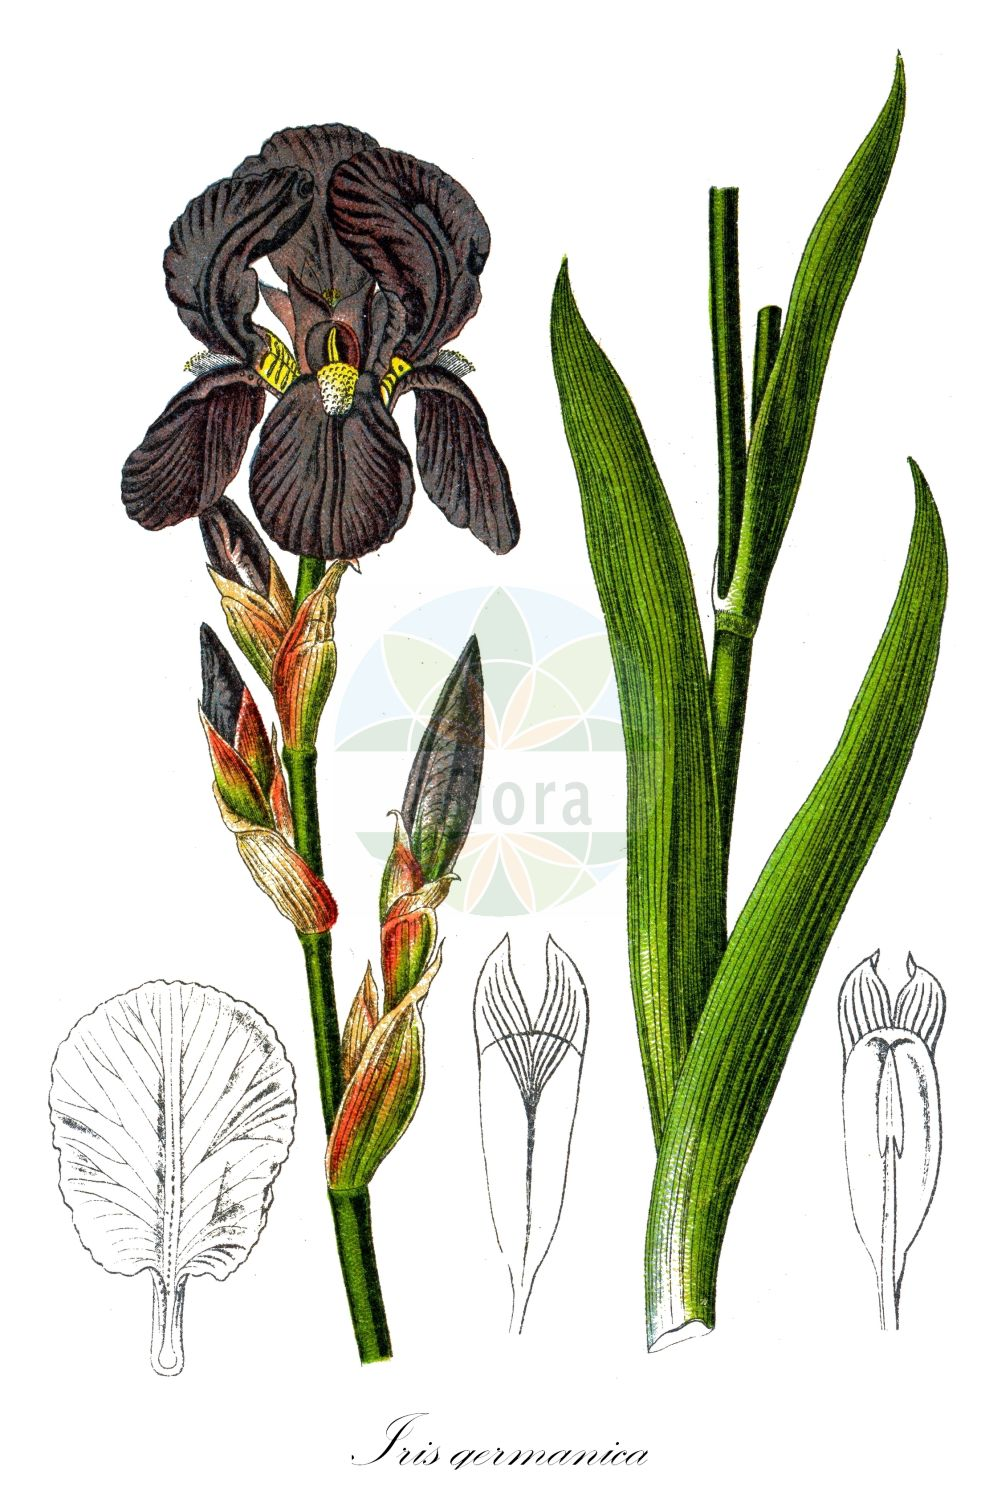 Historische Abbildung von Iris germanica (Deutsche Schwertlilie - Bearded Iris). Das Bild zeigt Blatt, Bluete, Frucht und Same. ---- Historical Drawing of Iris germanica (Deutsche Schwertlilie - Bearded Iris).The image is showing leaf, flower, fruit and seed. (Iris germanica,Deutsche Schwertlilie,Bearded Iris,Common Iris,German Iris,Iris,Schwertlilie,Iris,Iridaceae,Schwertliliengewaechse,Iris family,Blatt,Bluete,Frucht,Same,leaf,flower,fruit,seed,Kohl (1891-1895))